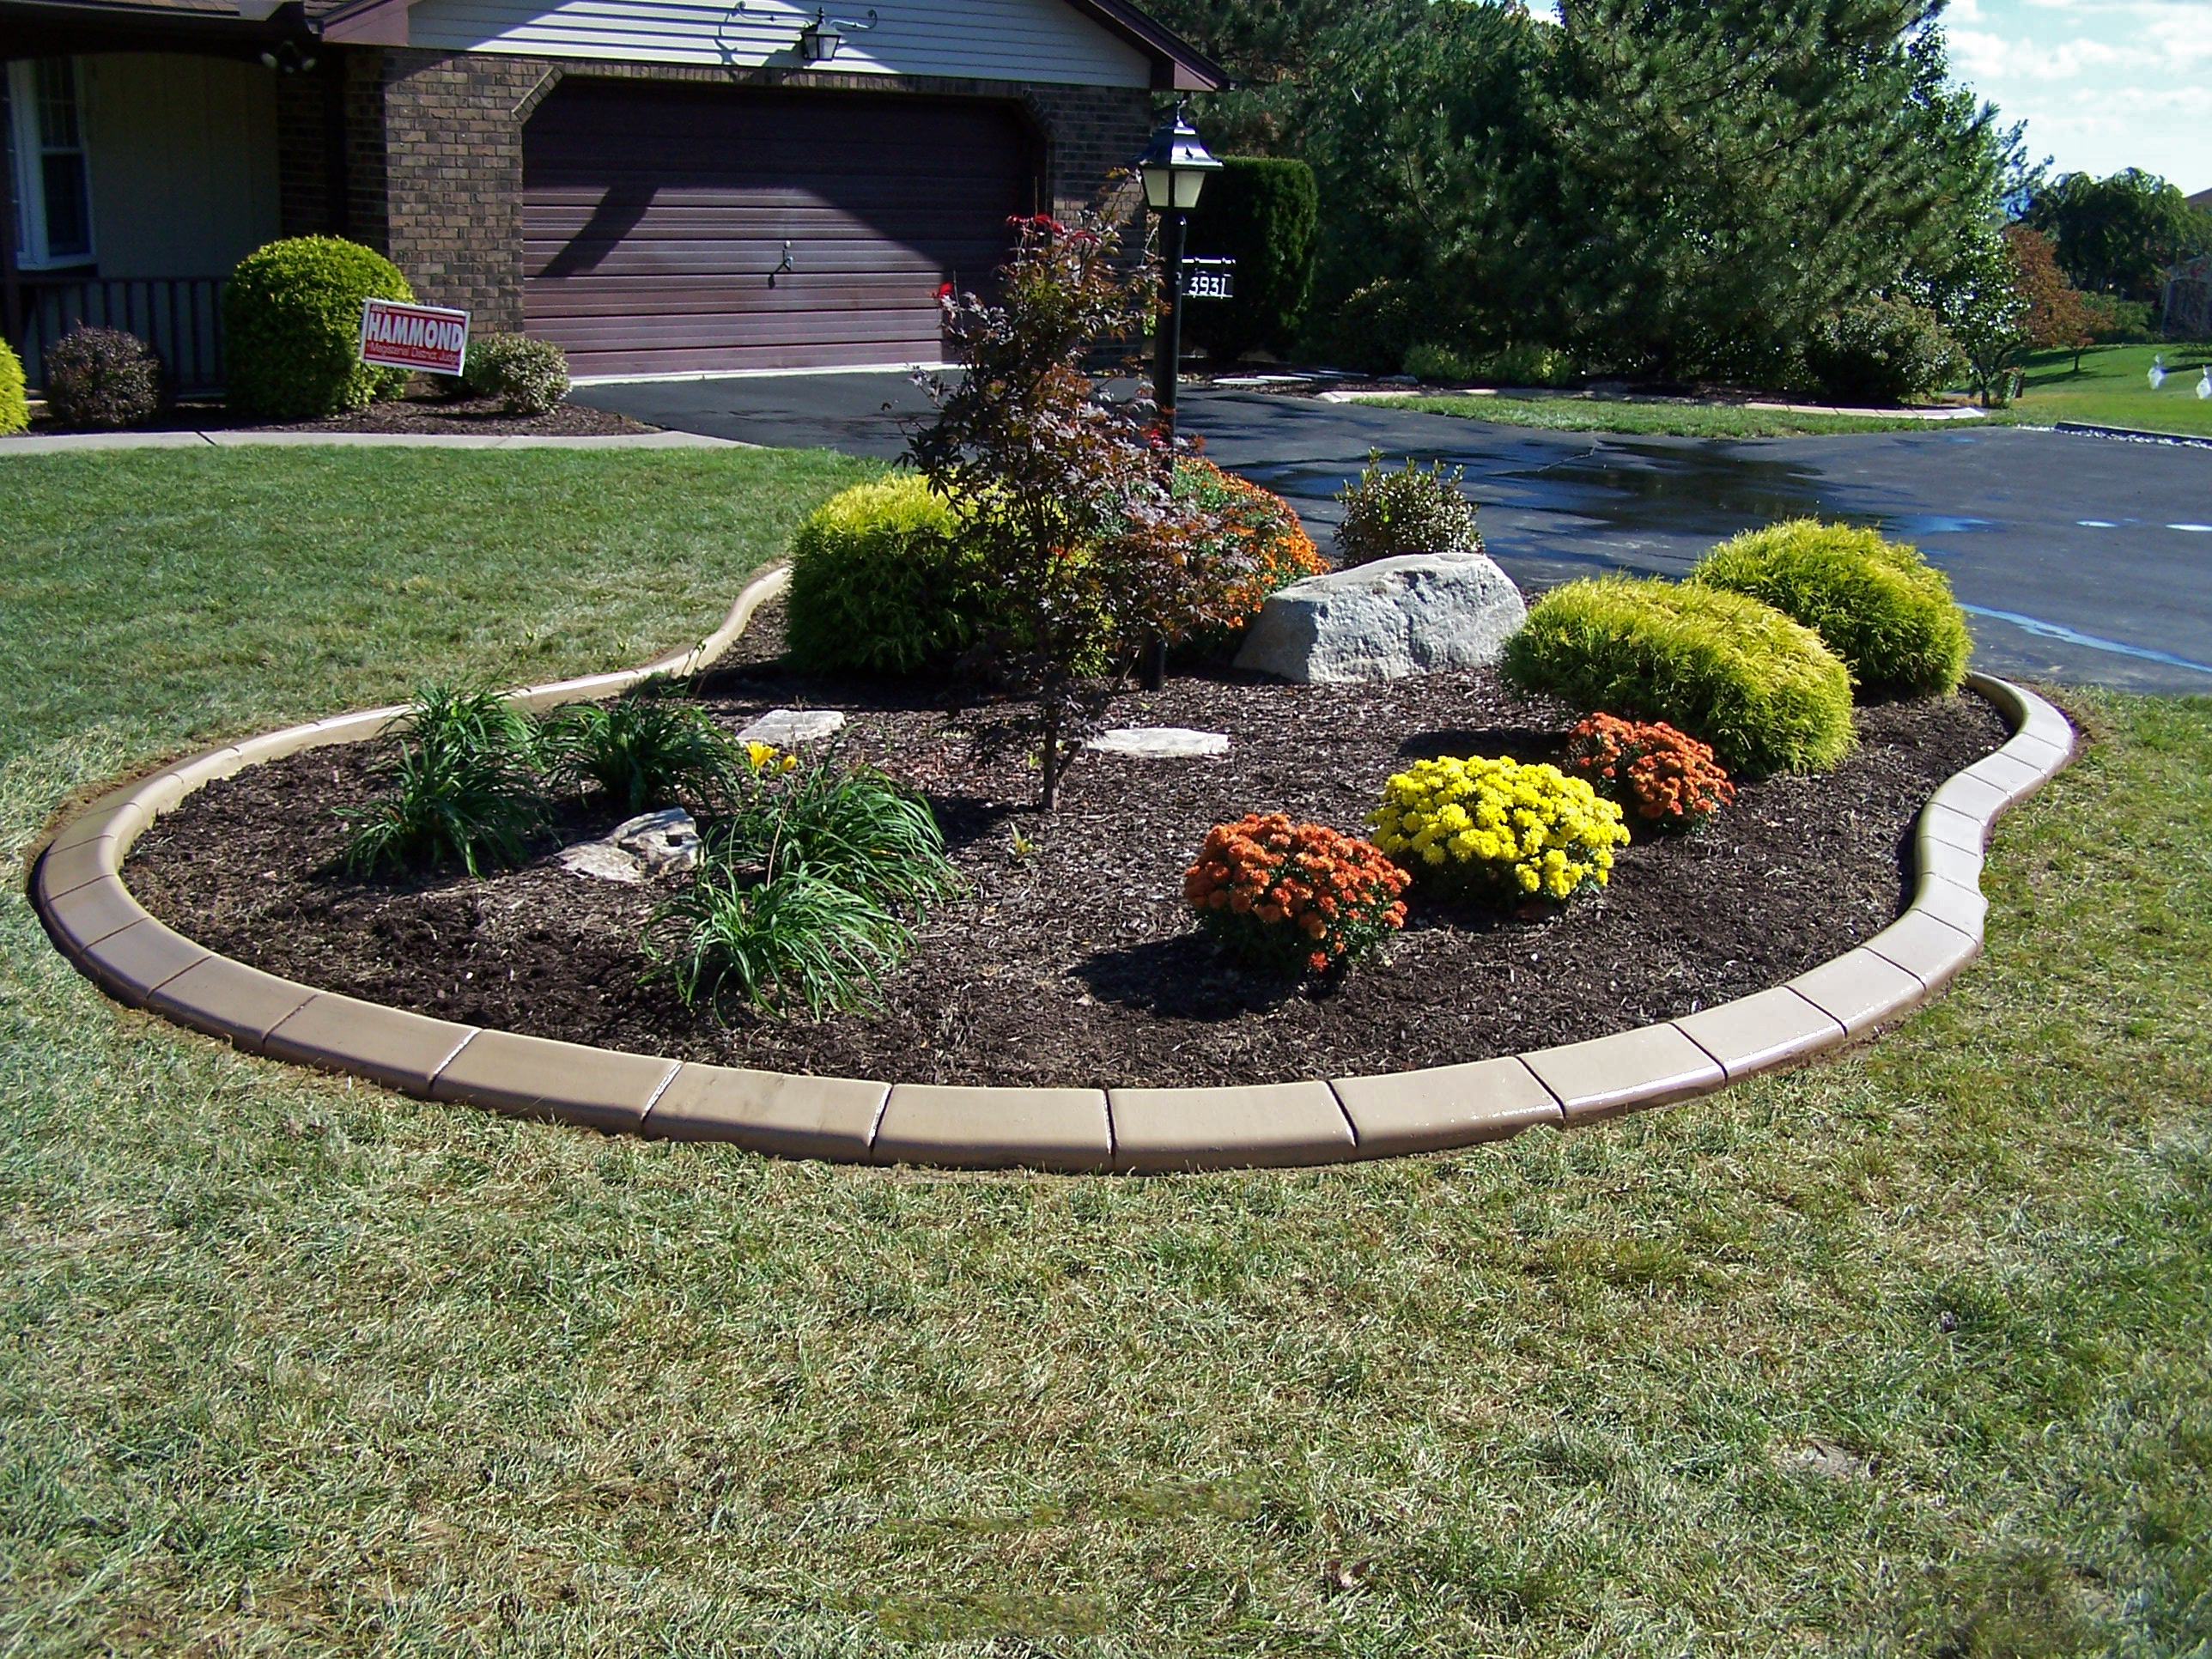 Marvelous Island Garden Bed With The Decorative Edge Curbing.